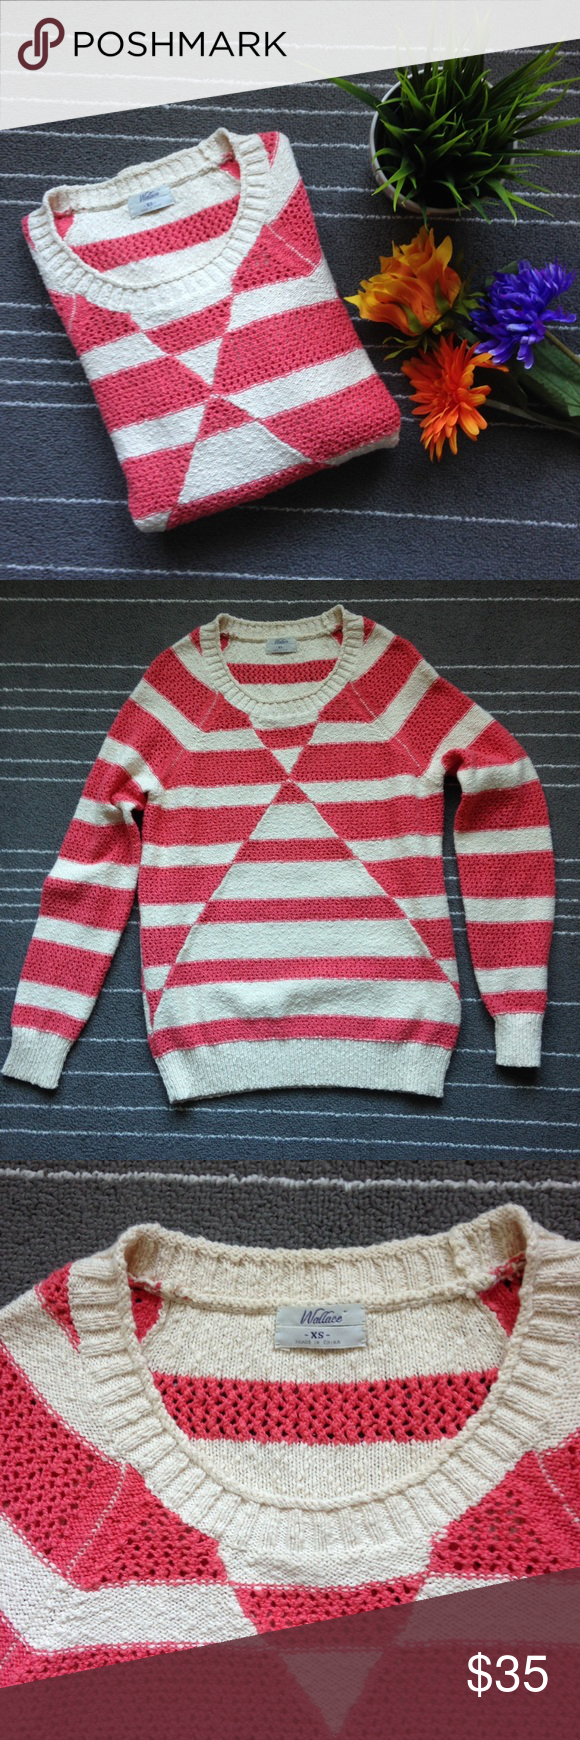 """Madewell pink and cream striped sweater Excellent preloved condition. No flaws to note. Wallace brand. 100% cotton. Chest measures 17.5"""" and length is 24"""". Size xs. Can probably fit a small. Madewell Sweaters Crew & Scoop Necks"""